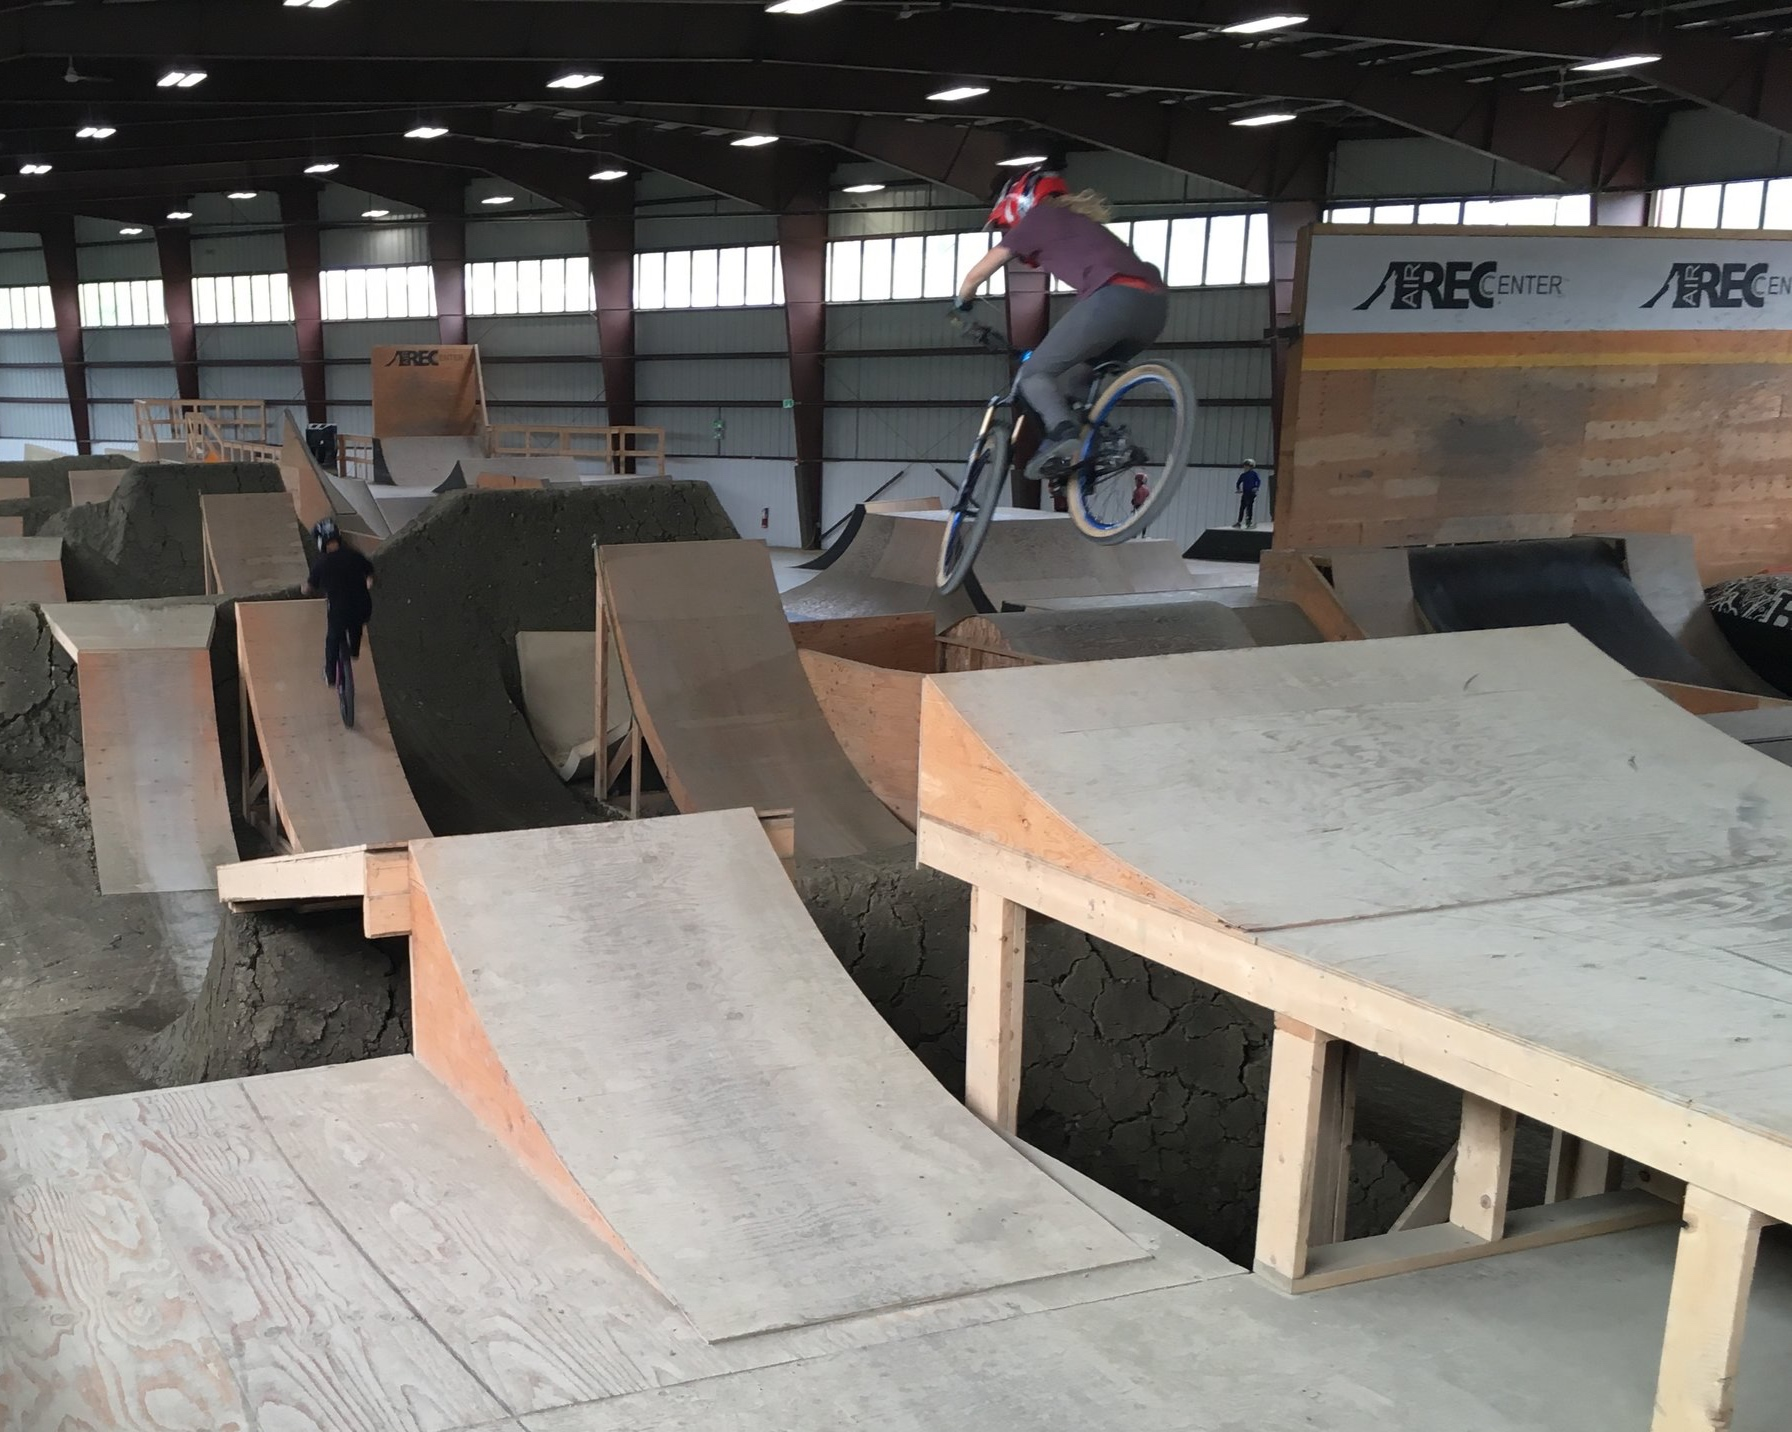 Cailin dropping in on the big line at WFM Bike's ladies only indoor park session at Air Rec Centre. Photo credit: Lisa Mason